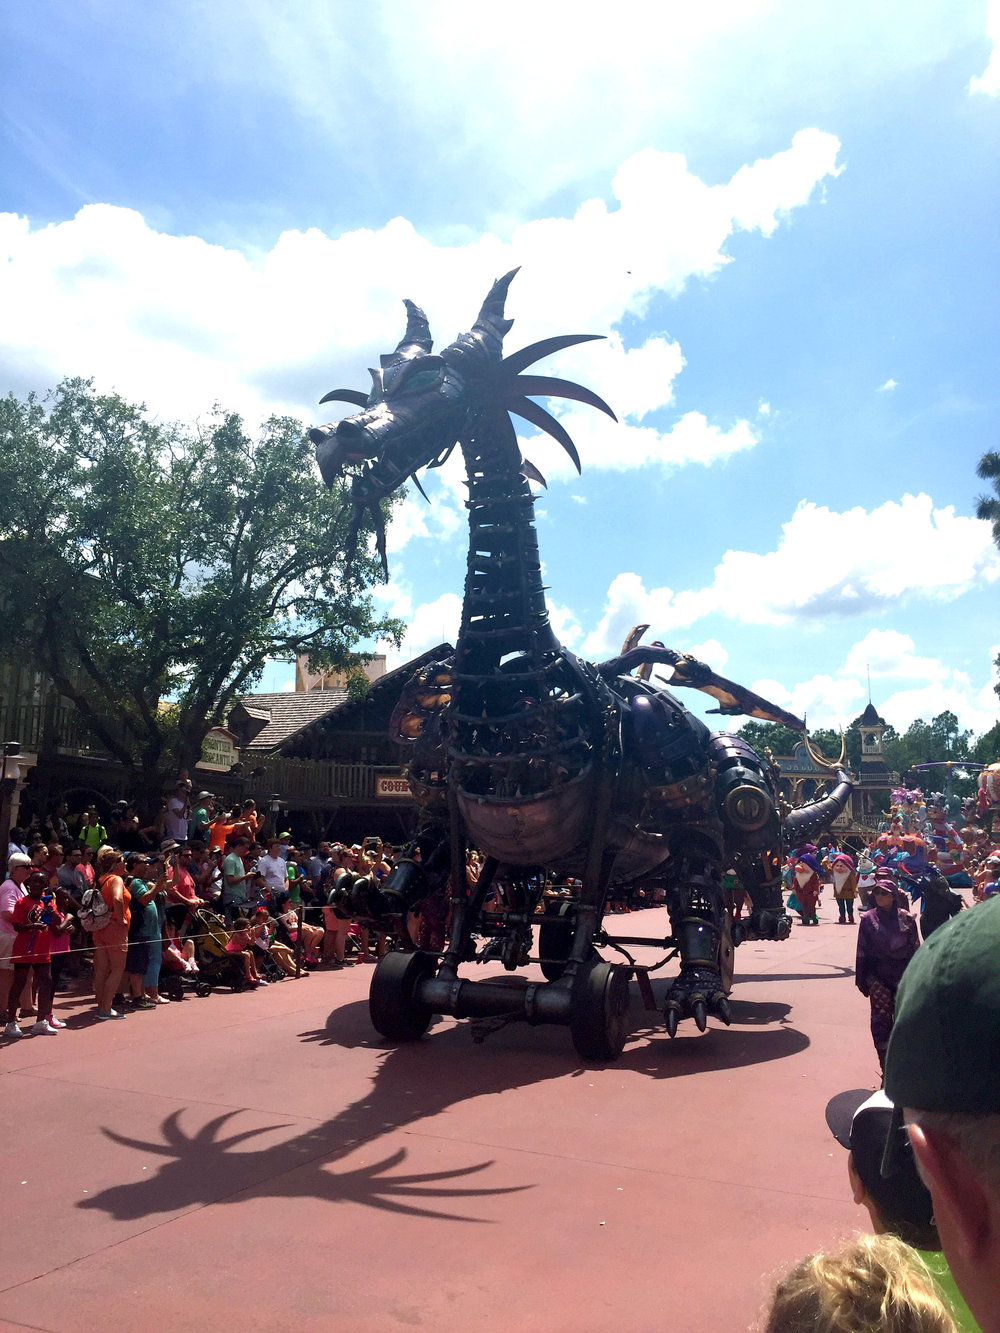 The main spectacle of the Sleeping Beauty section of the parade is the giant Maleficent dragon.